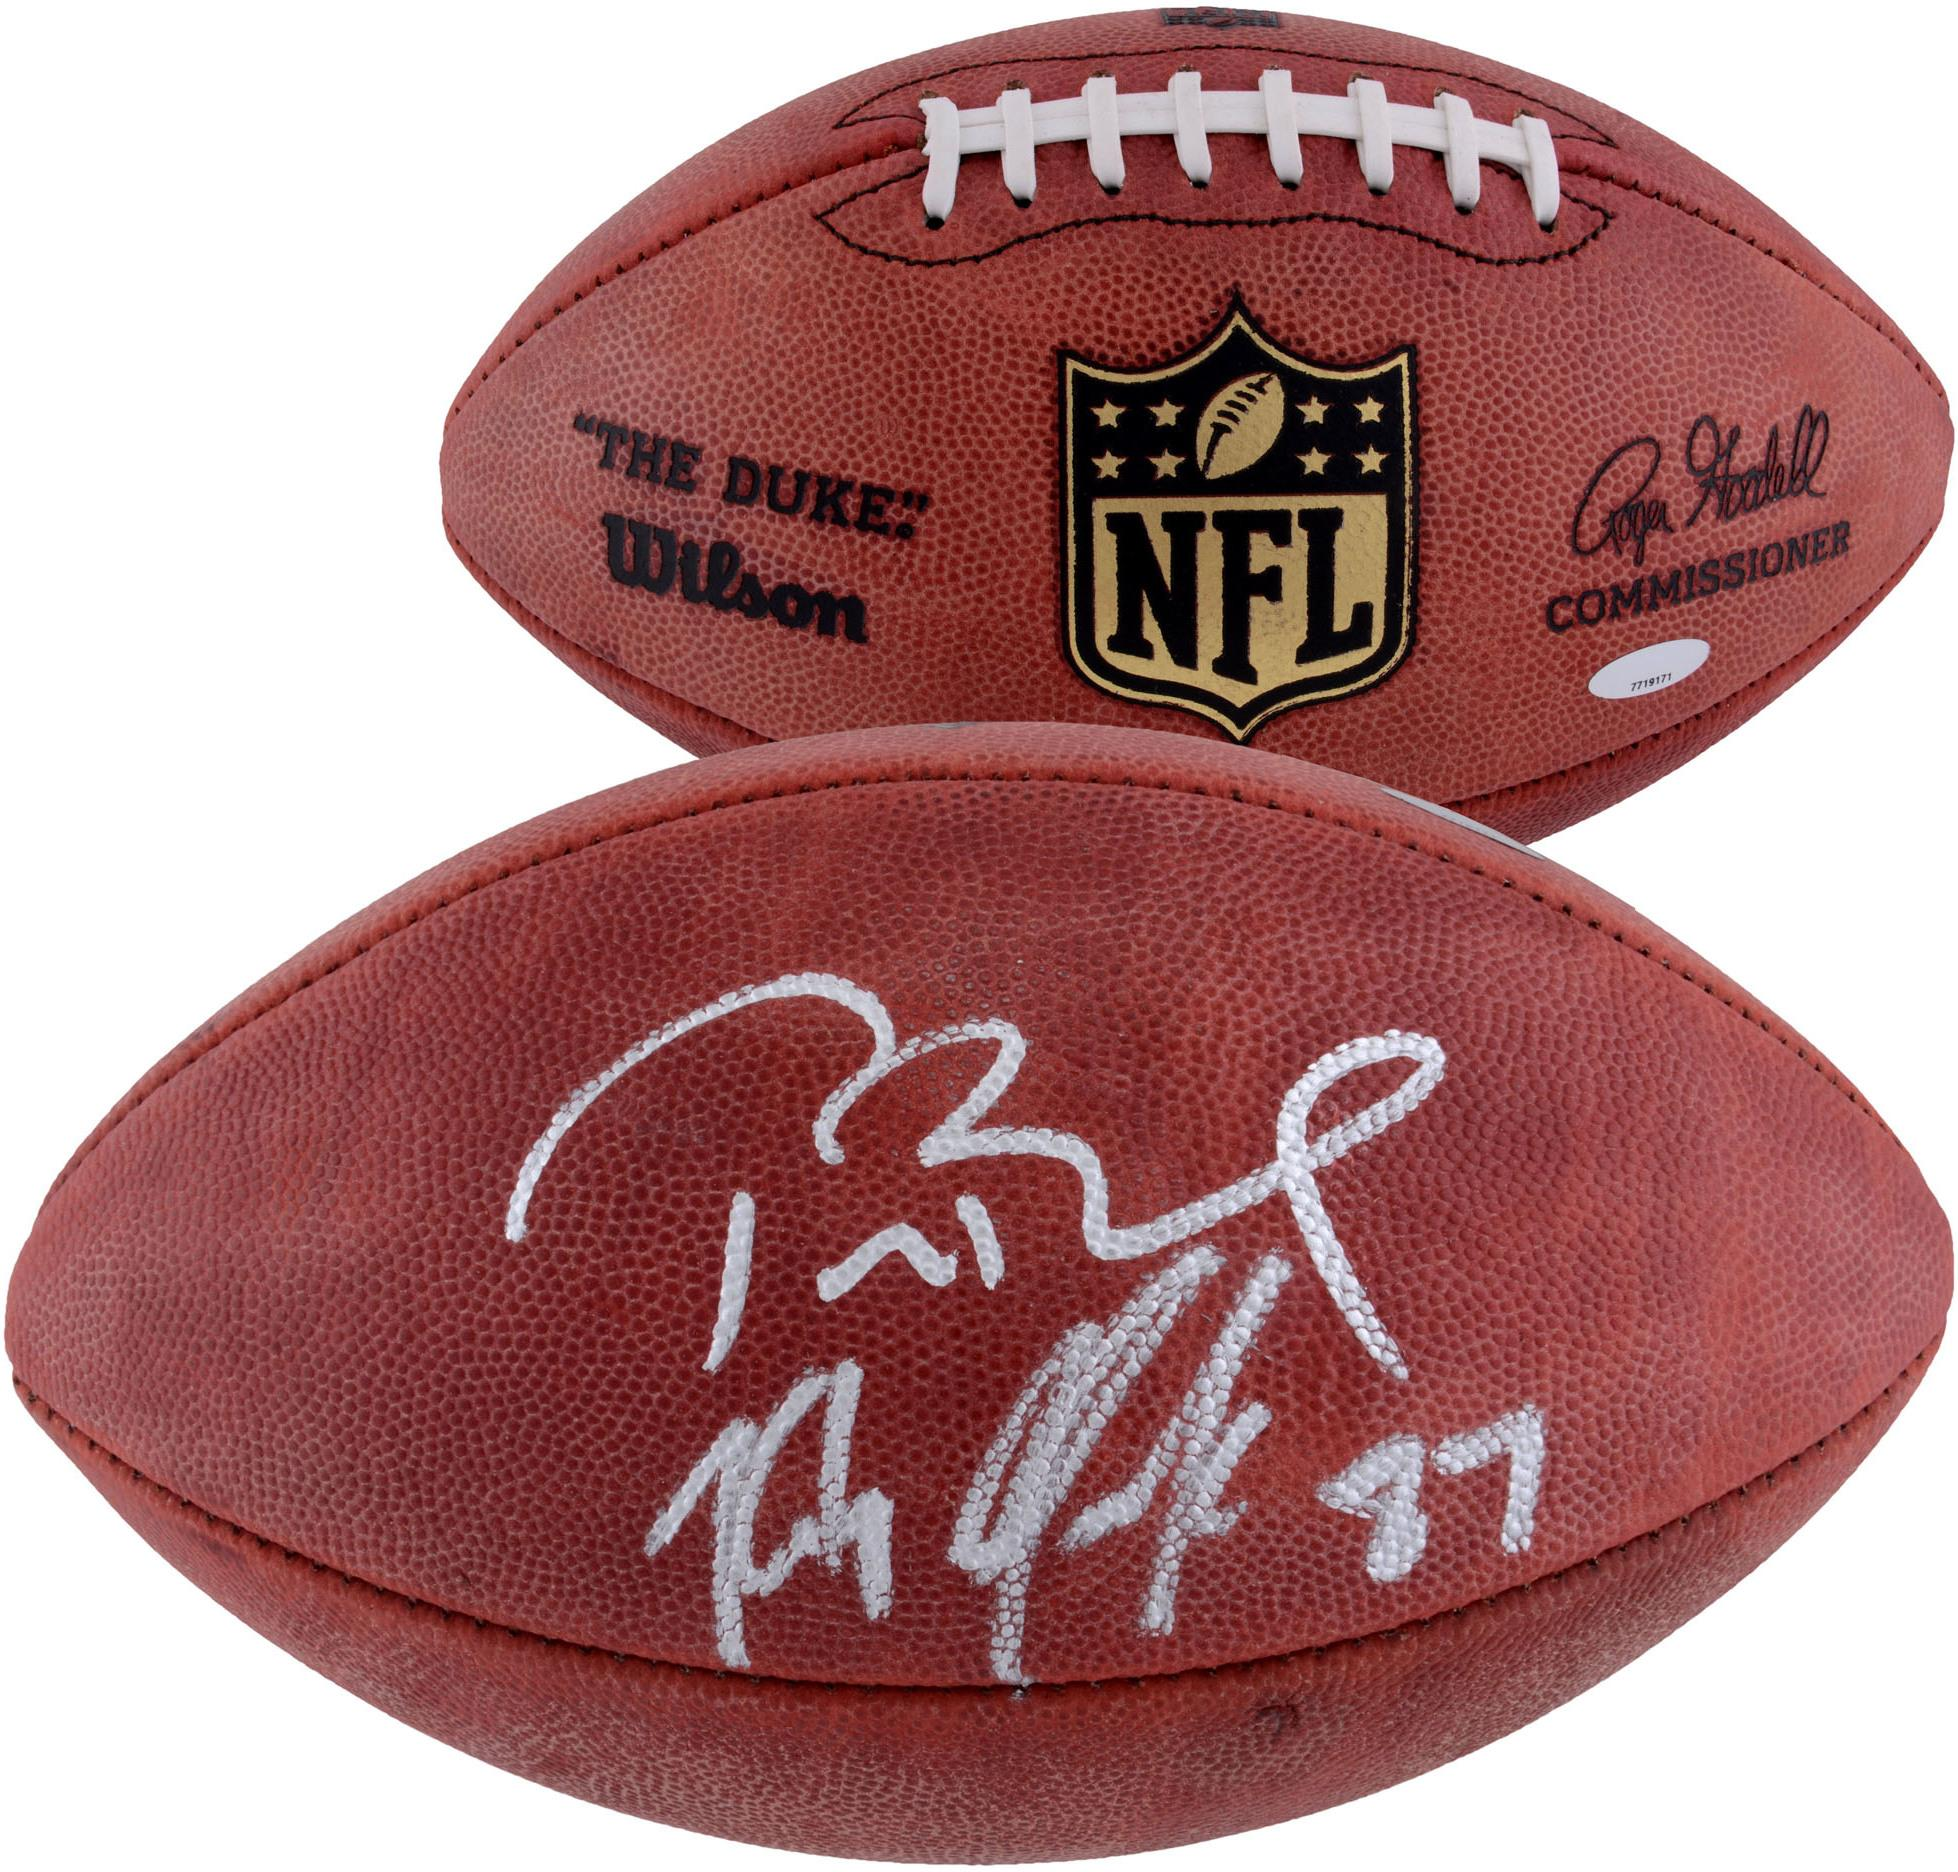 Autographed & Signed Footballs, Signature Football